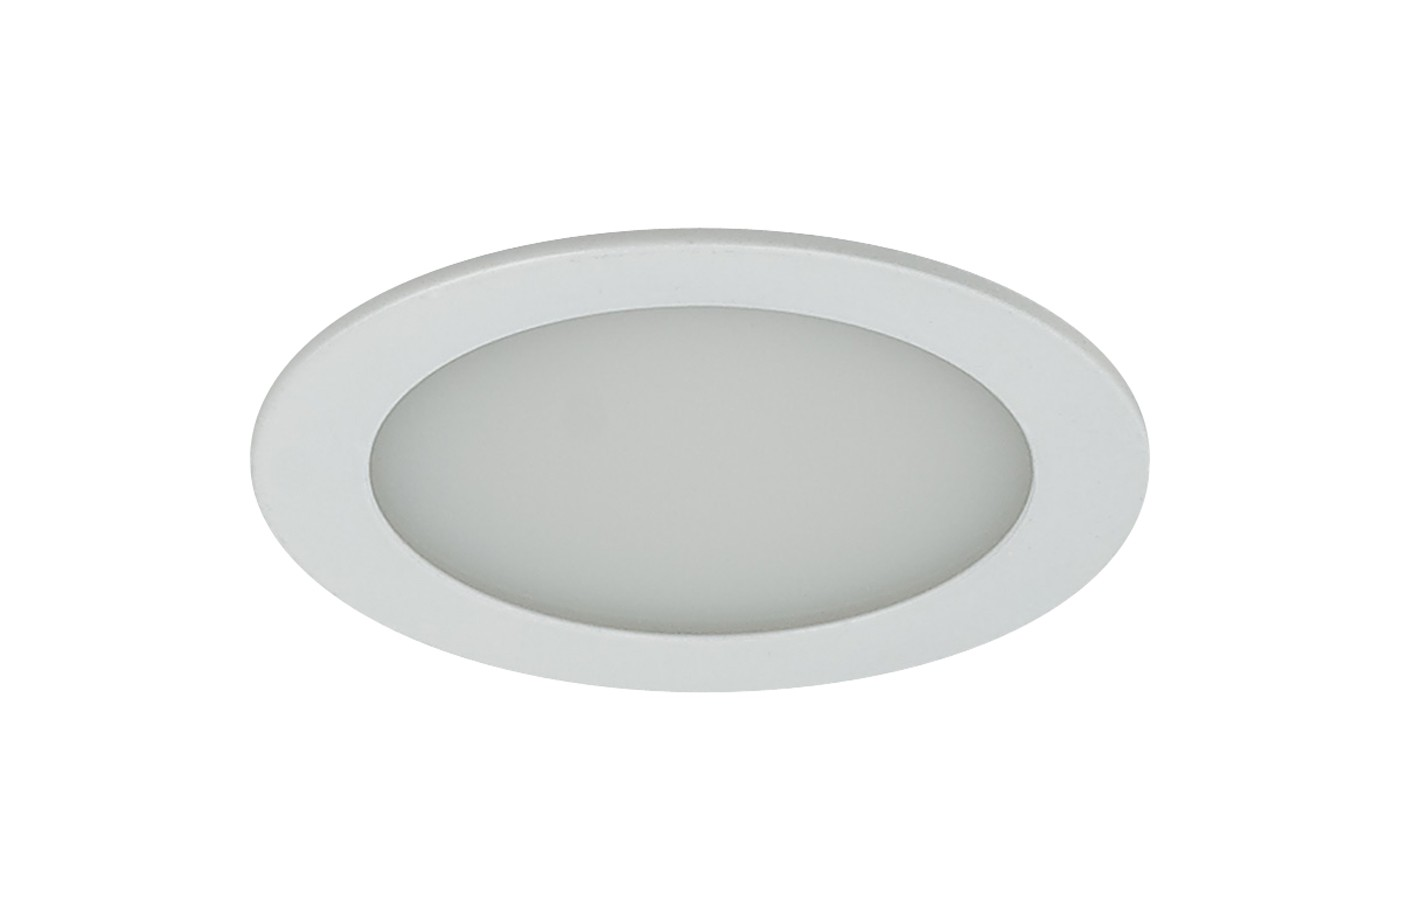 Liton Lk136led Linkaled Puck Light Recessed Emergency Led Ballast With Low Voltage Dimmer Wiring